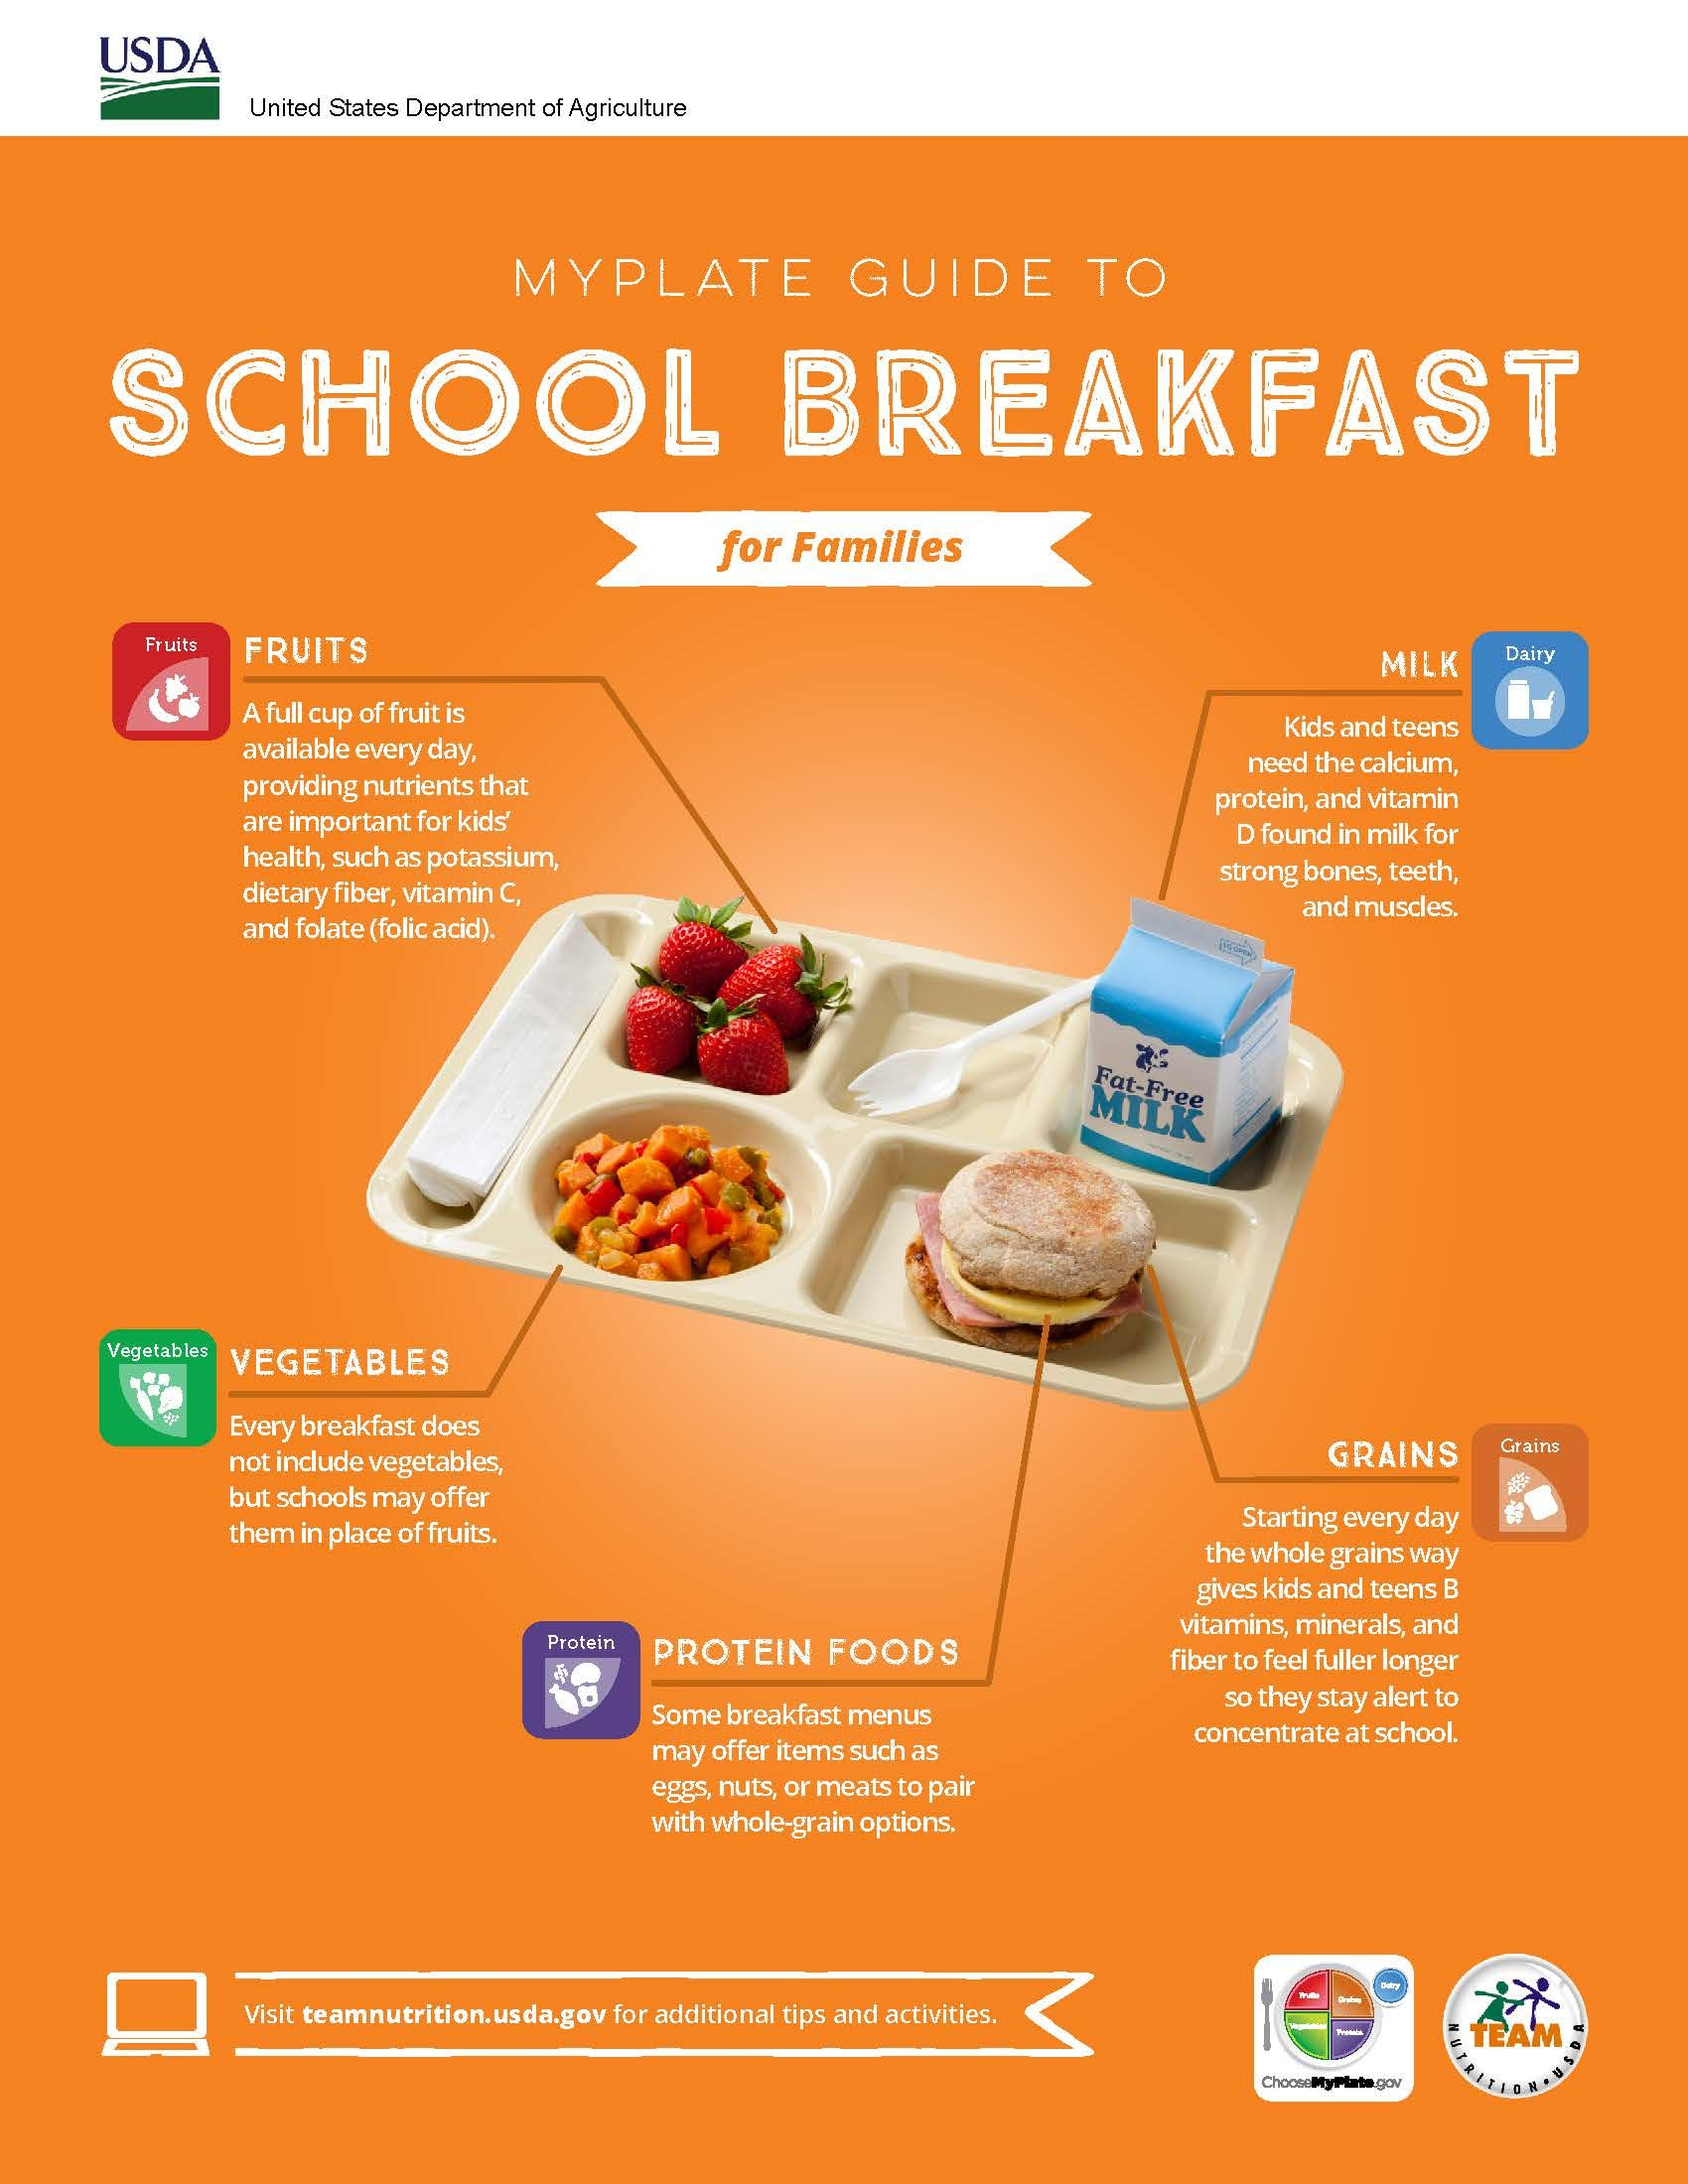 MyPlate Guide to School Breakfast for Families